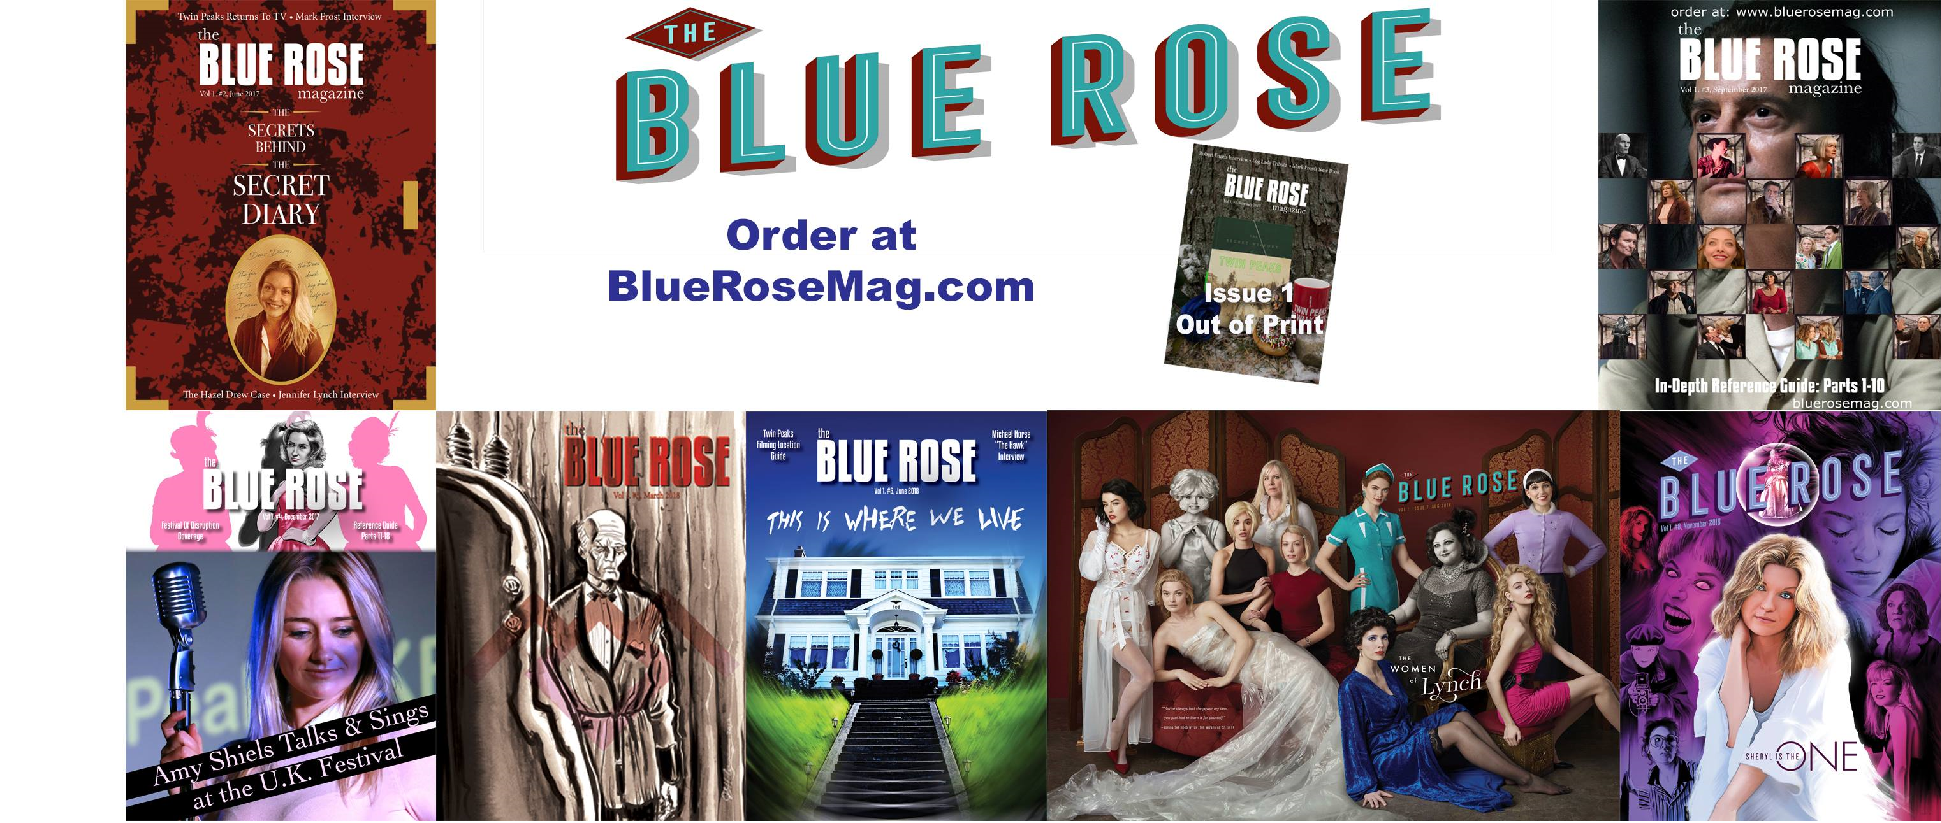 The Blue Rose Magazine Covers of 2017 and 2018